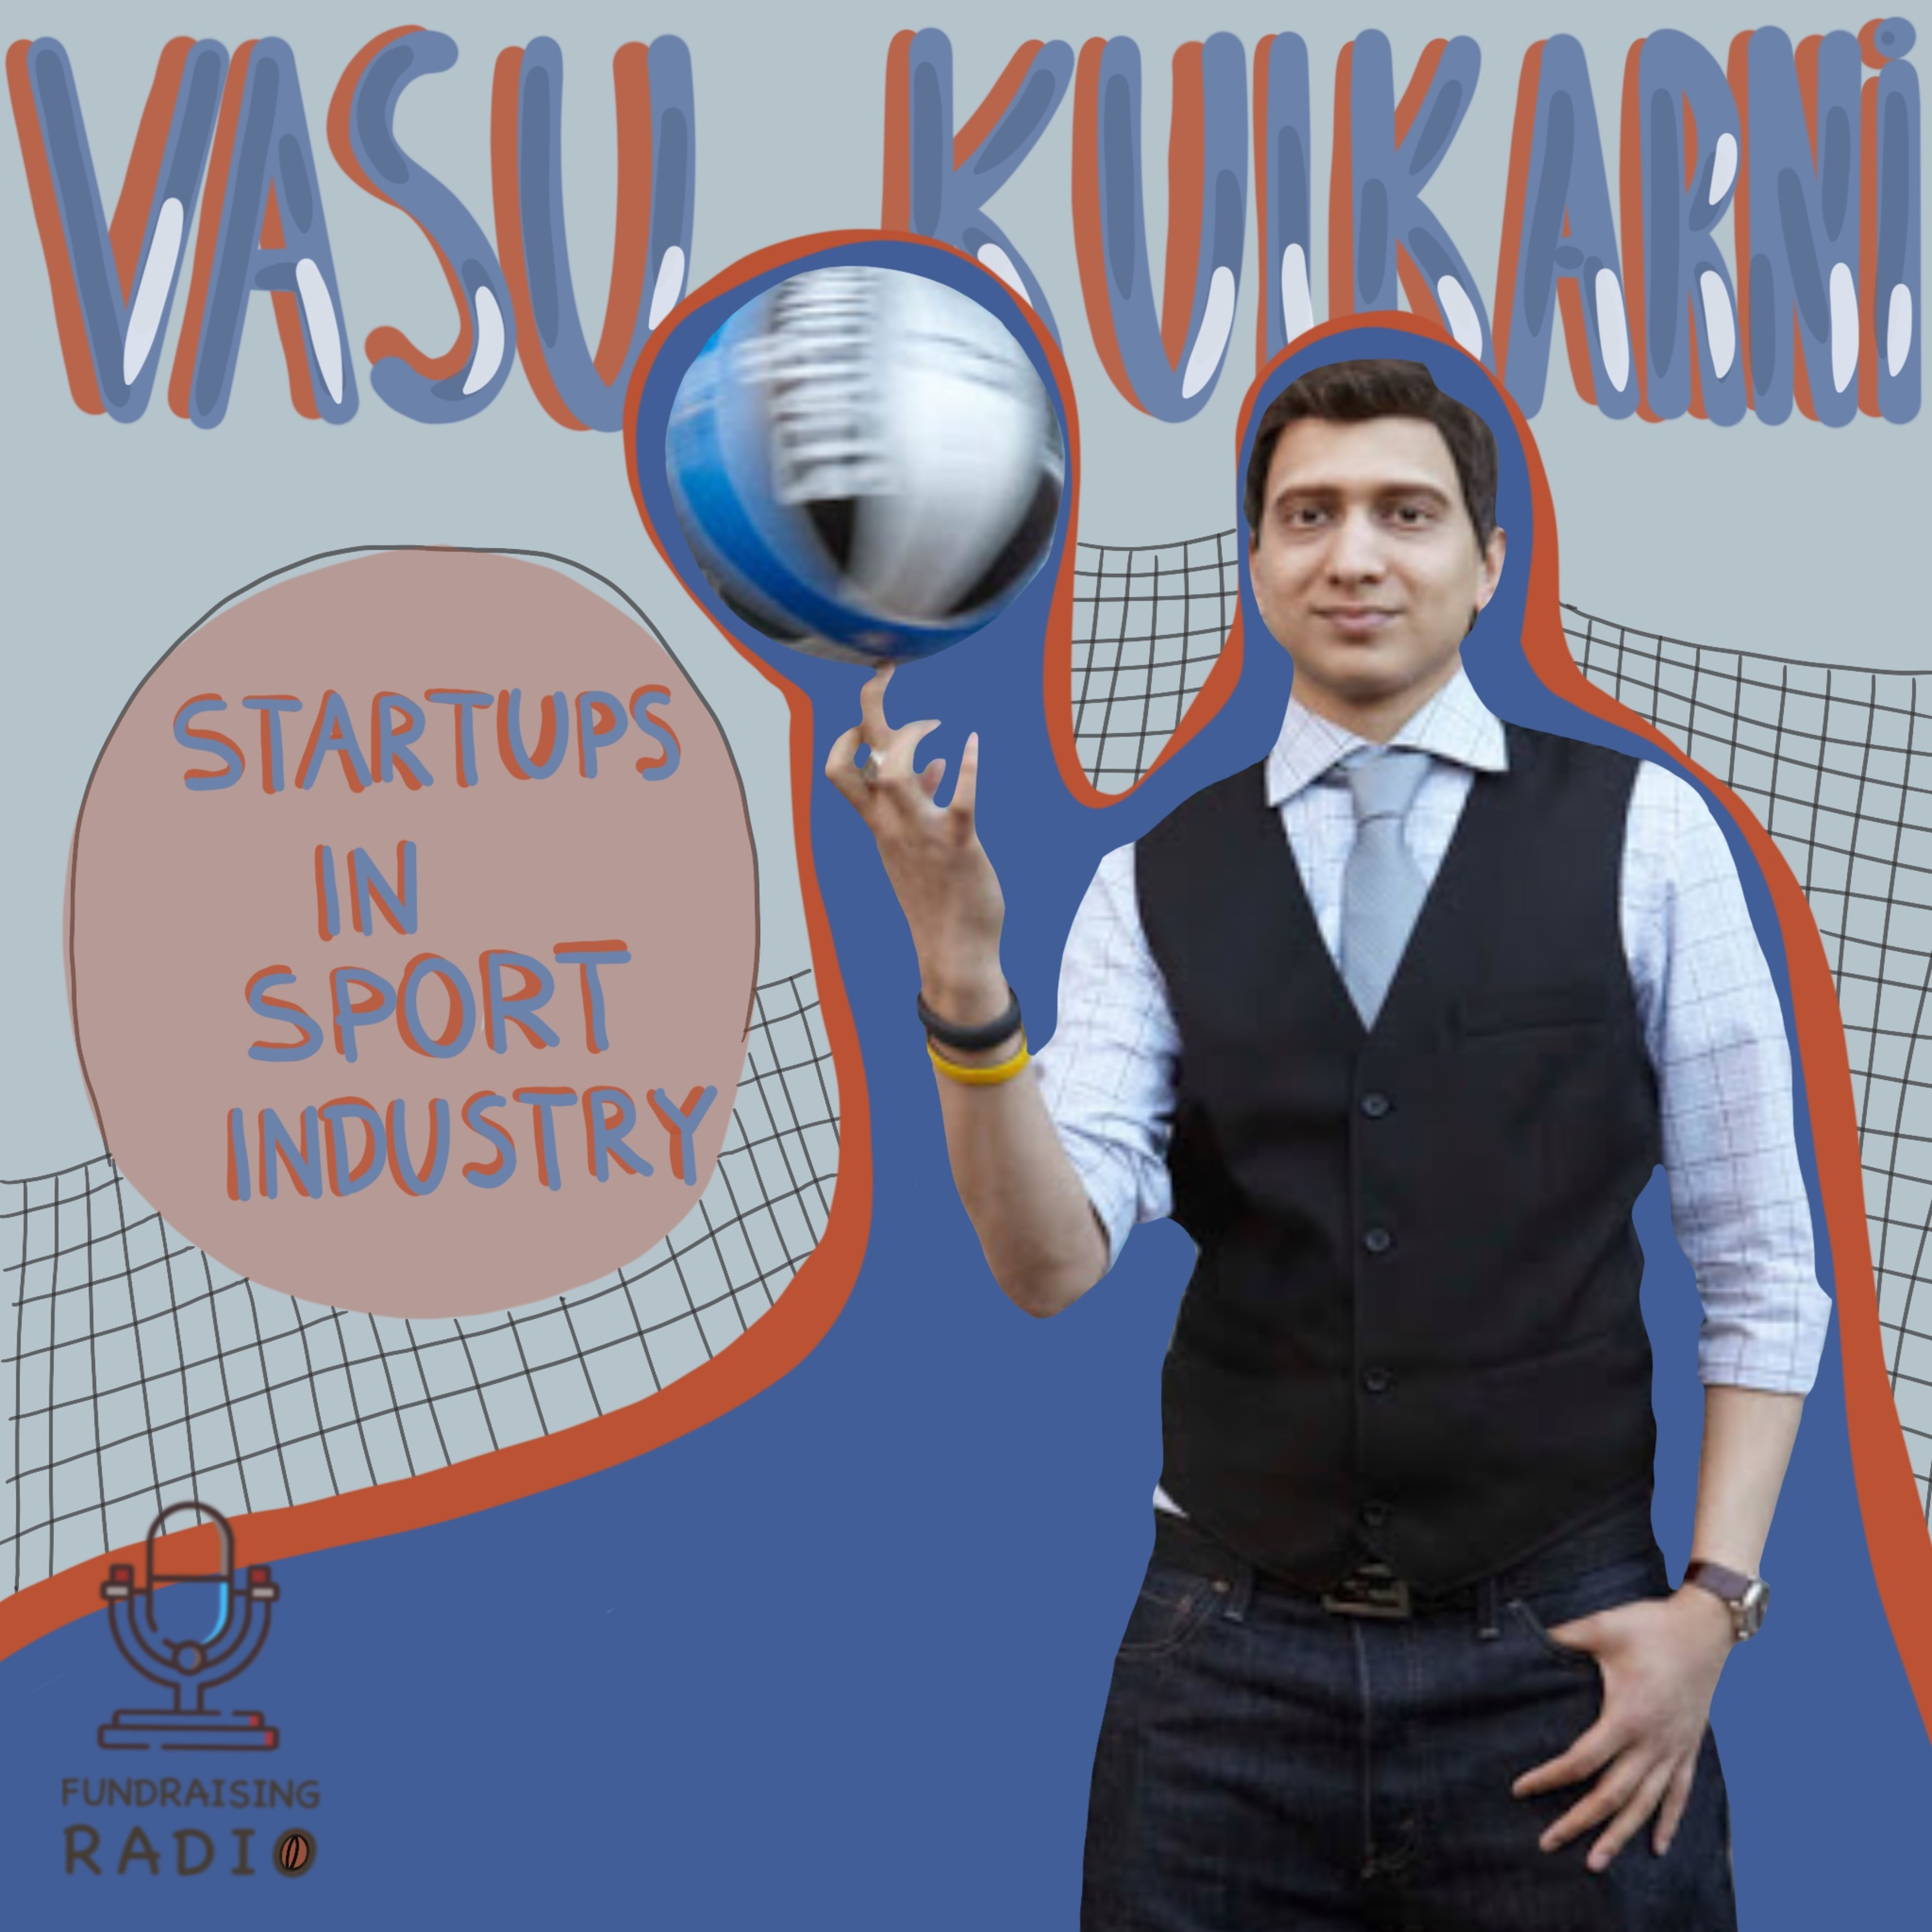 Investing in sports, fitness and gaming industry - what's happening during covid? By Vasu Kulkarni.